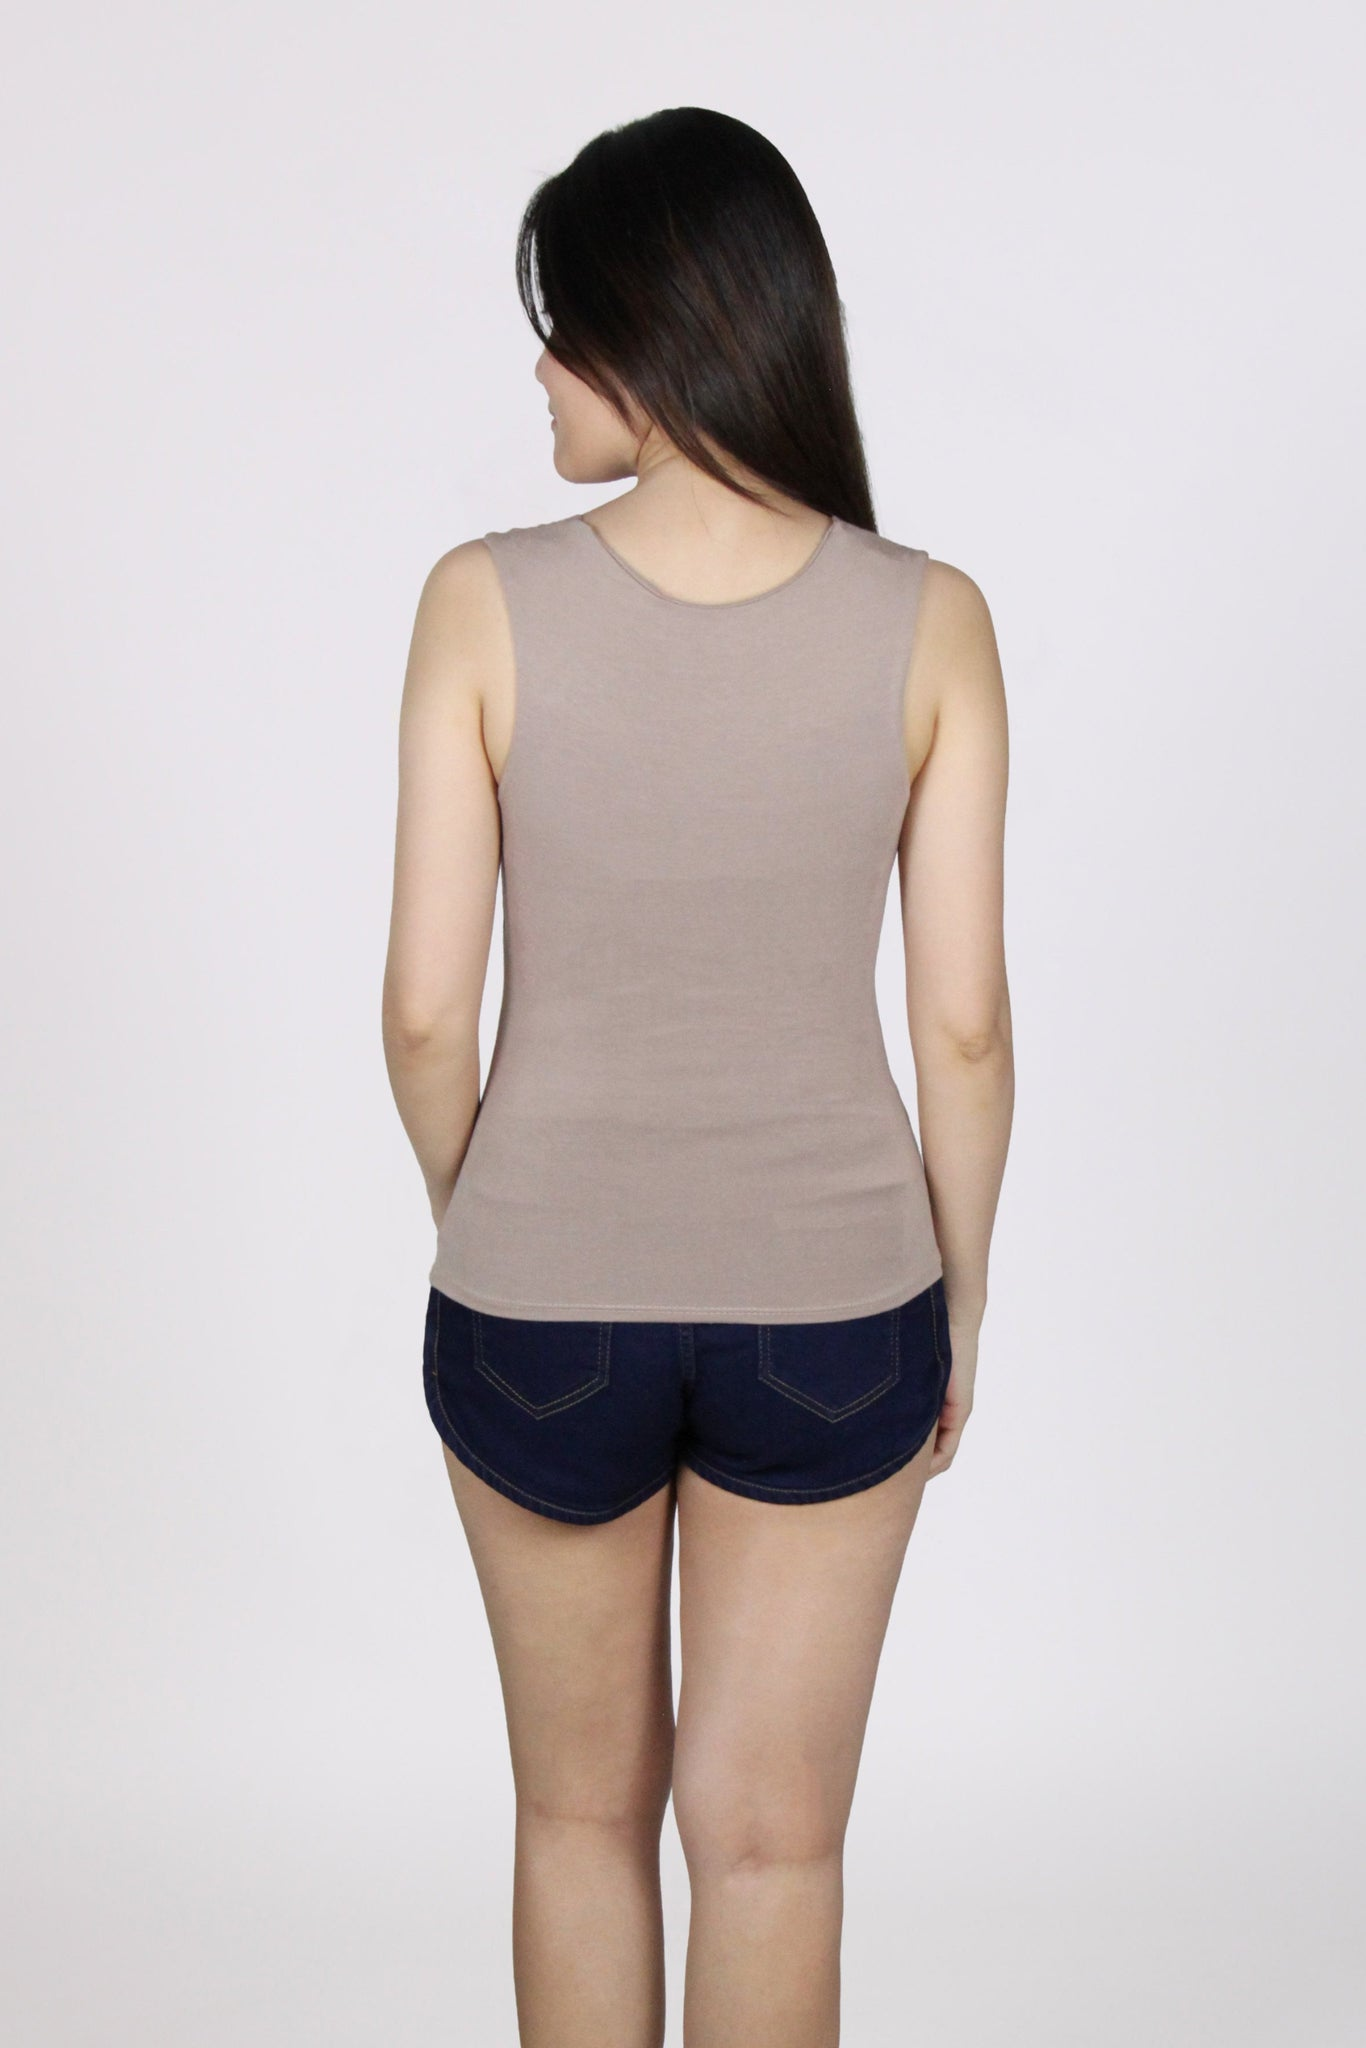 Basic Sleeveless Wide Square Neck Cotton Top in Beige